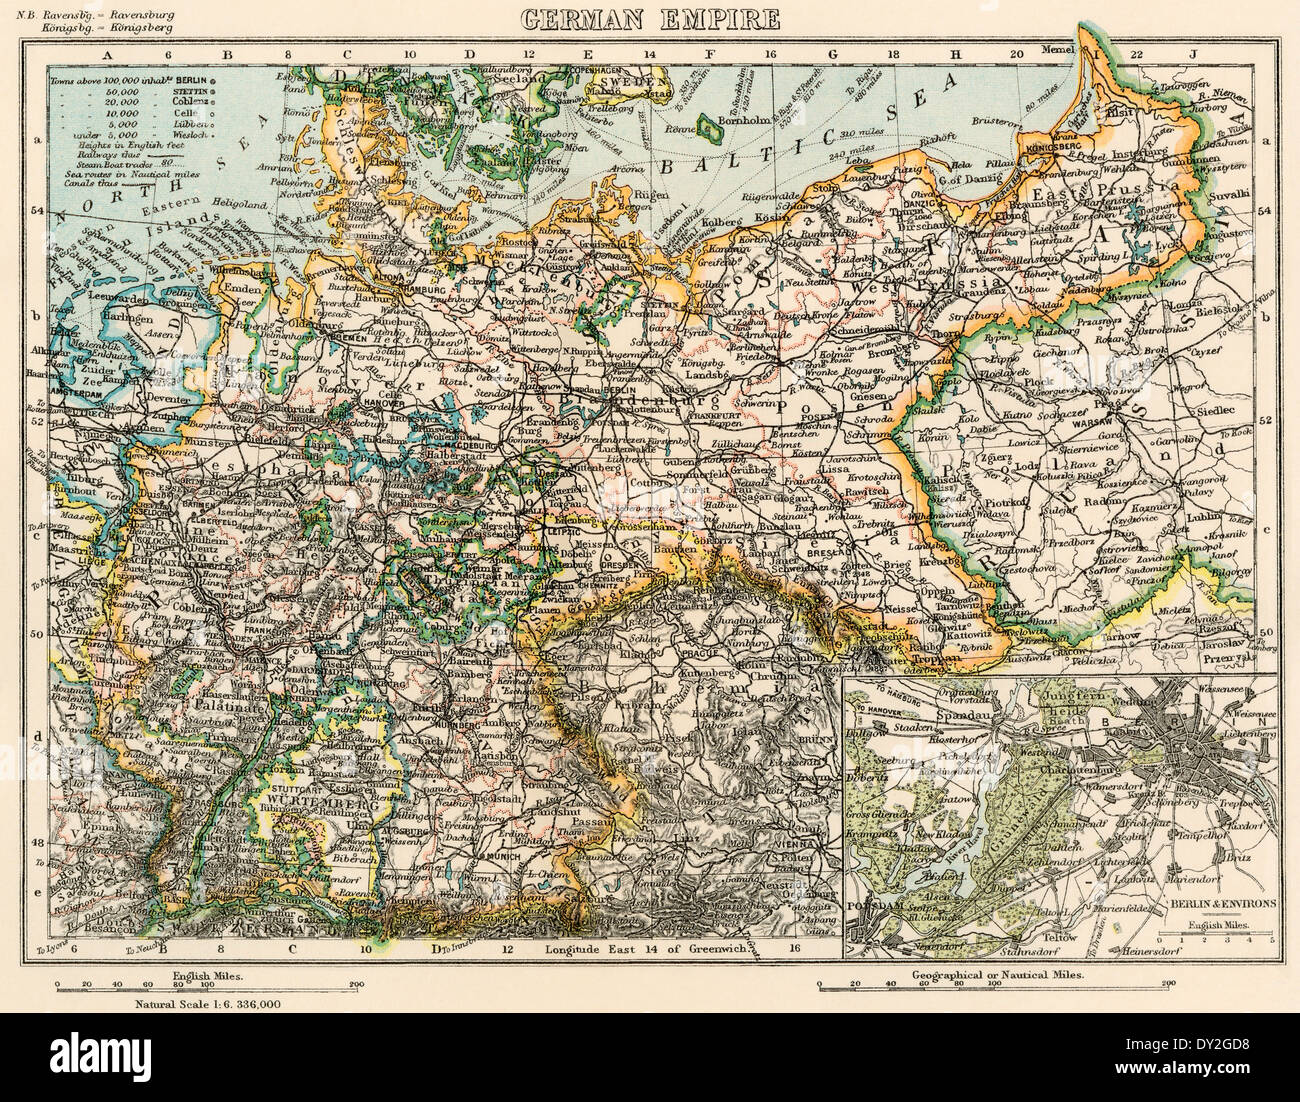 Map of the German Empire, late 1800s. Printed color lithograph - Stock Image